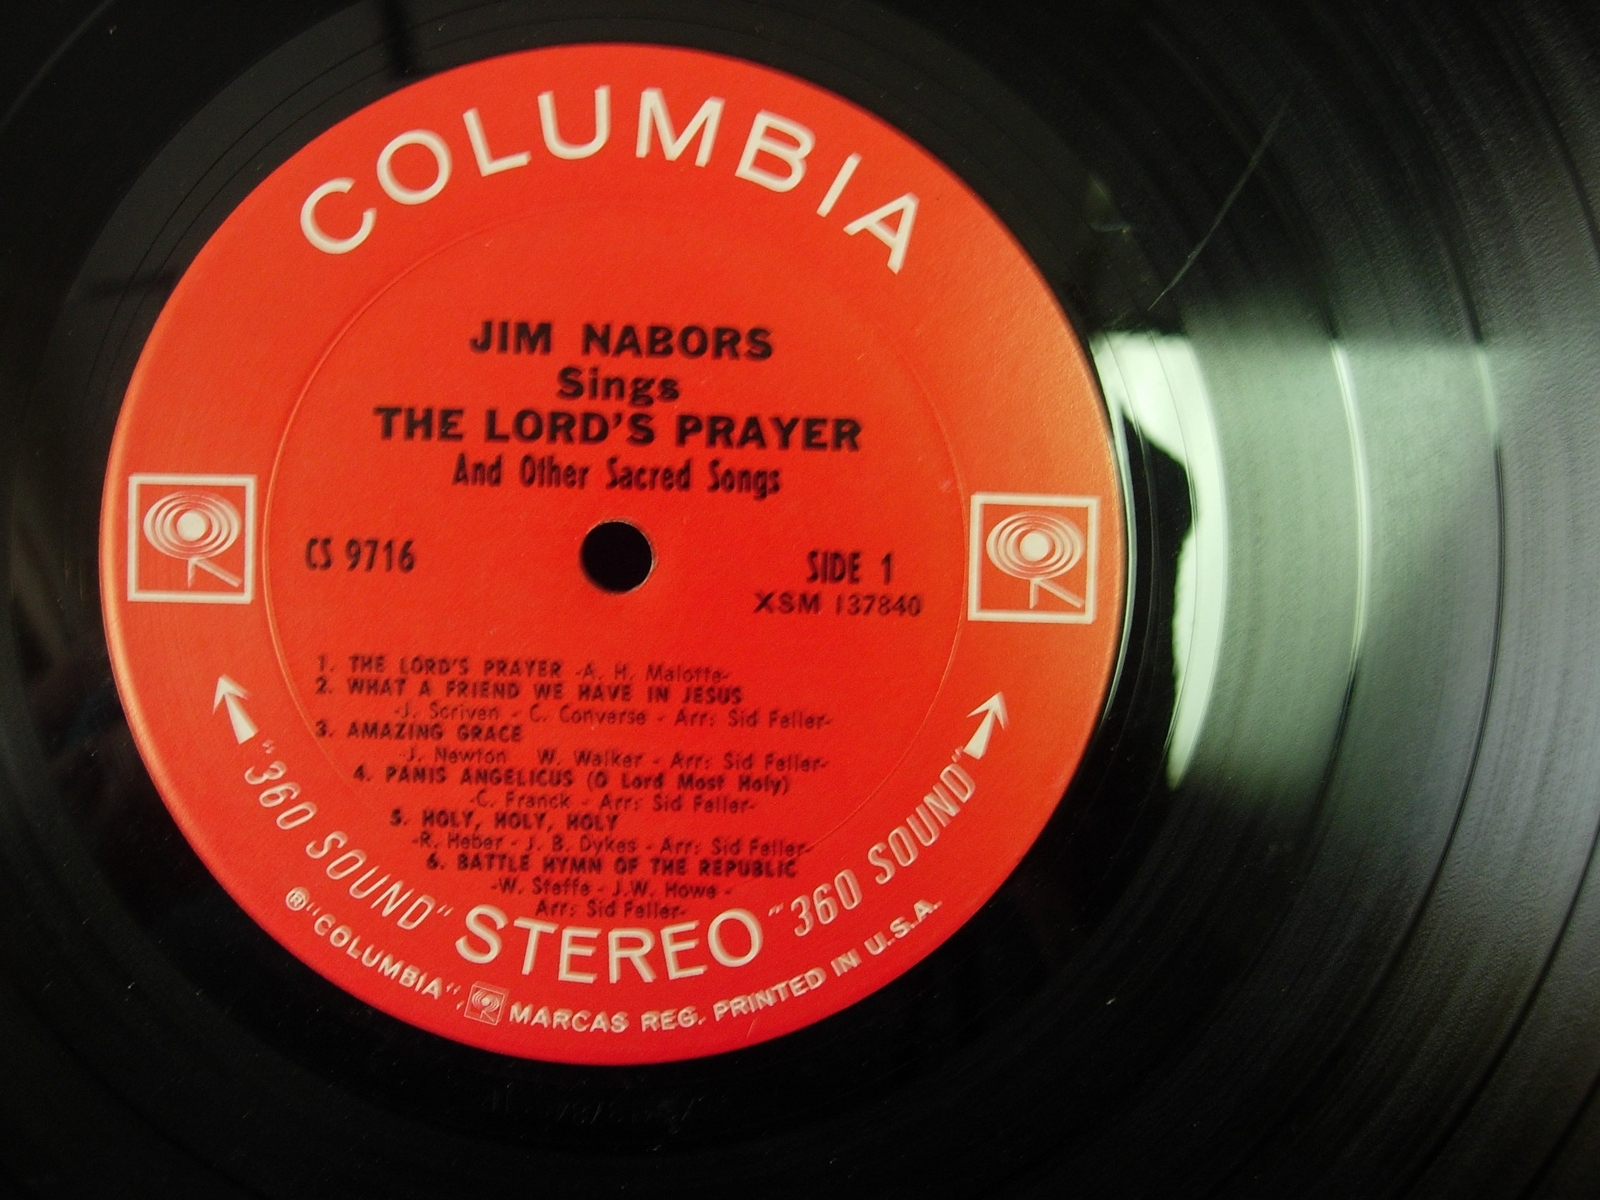 Jim Nabors - The Lord's Prayer & Other Sacred Songs - Columbia Records CS 9716